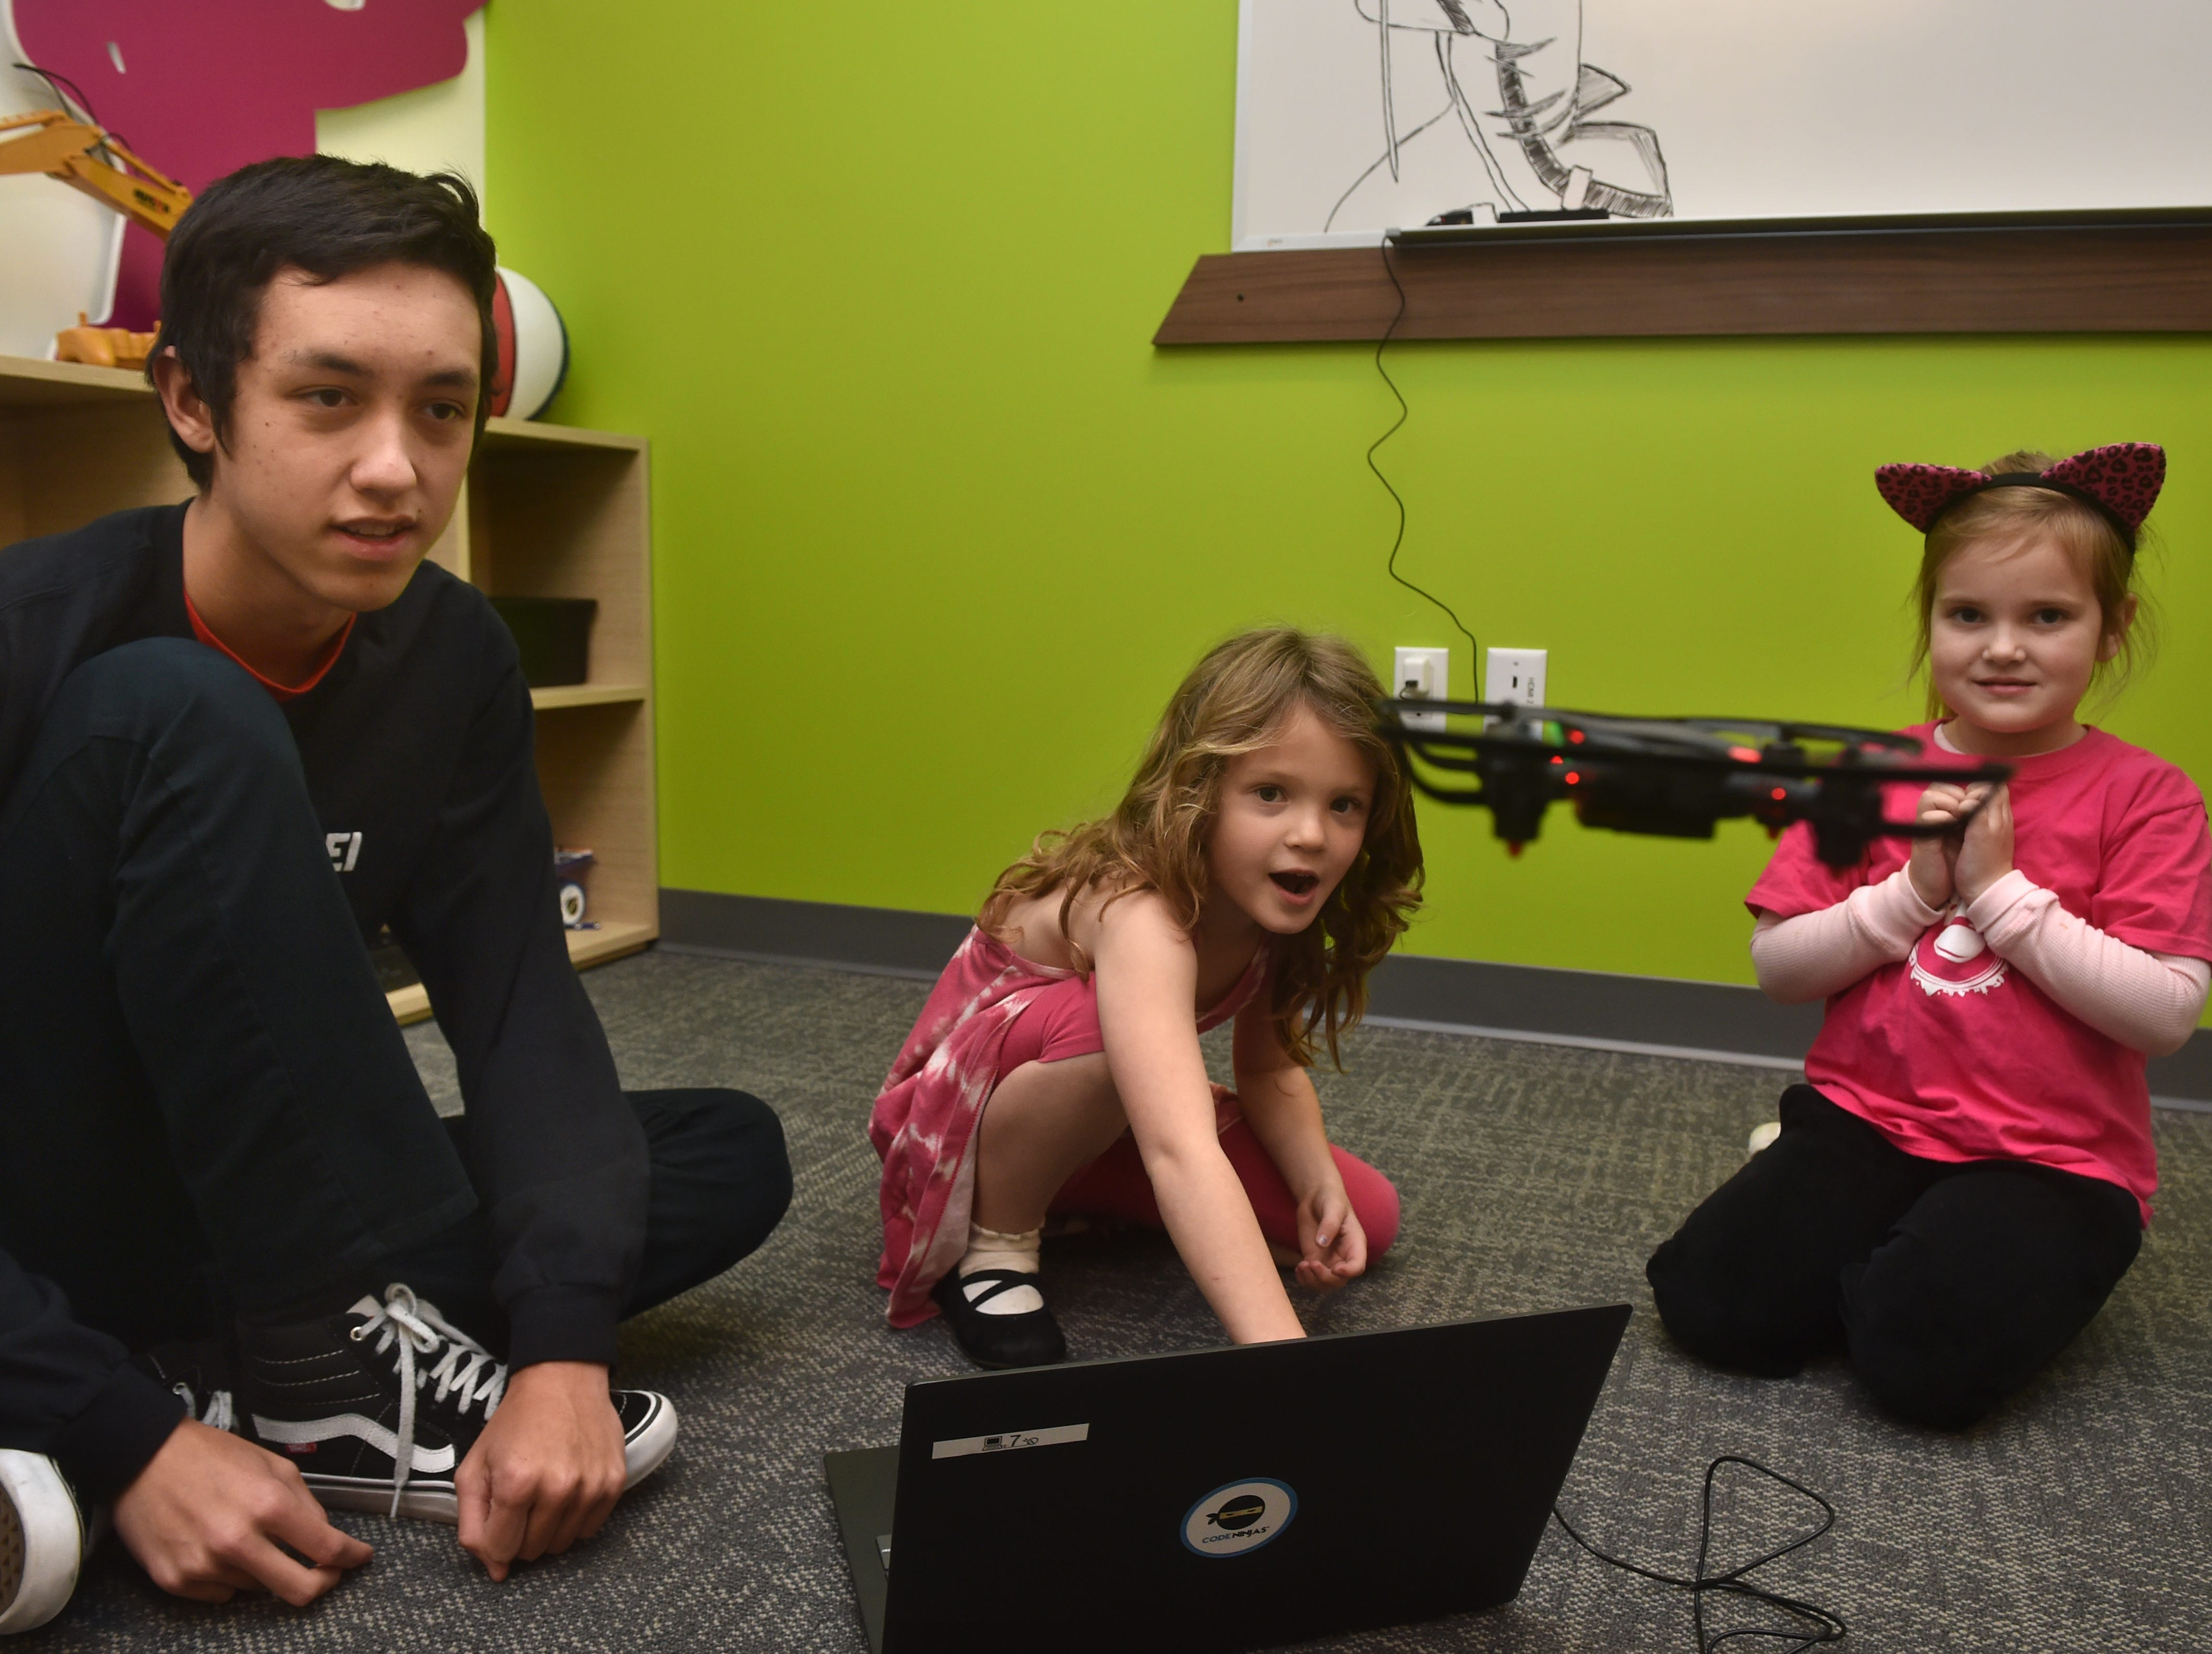 Devin Lucarelli, center, and Coco Schulz learn to fly a miniature drone with the help of sensei John McFarland at the new Code Ninjas dojo in Thousand Oaks. The facility is the first of its kind in Ventura County and the fifth franchise site in California.